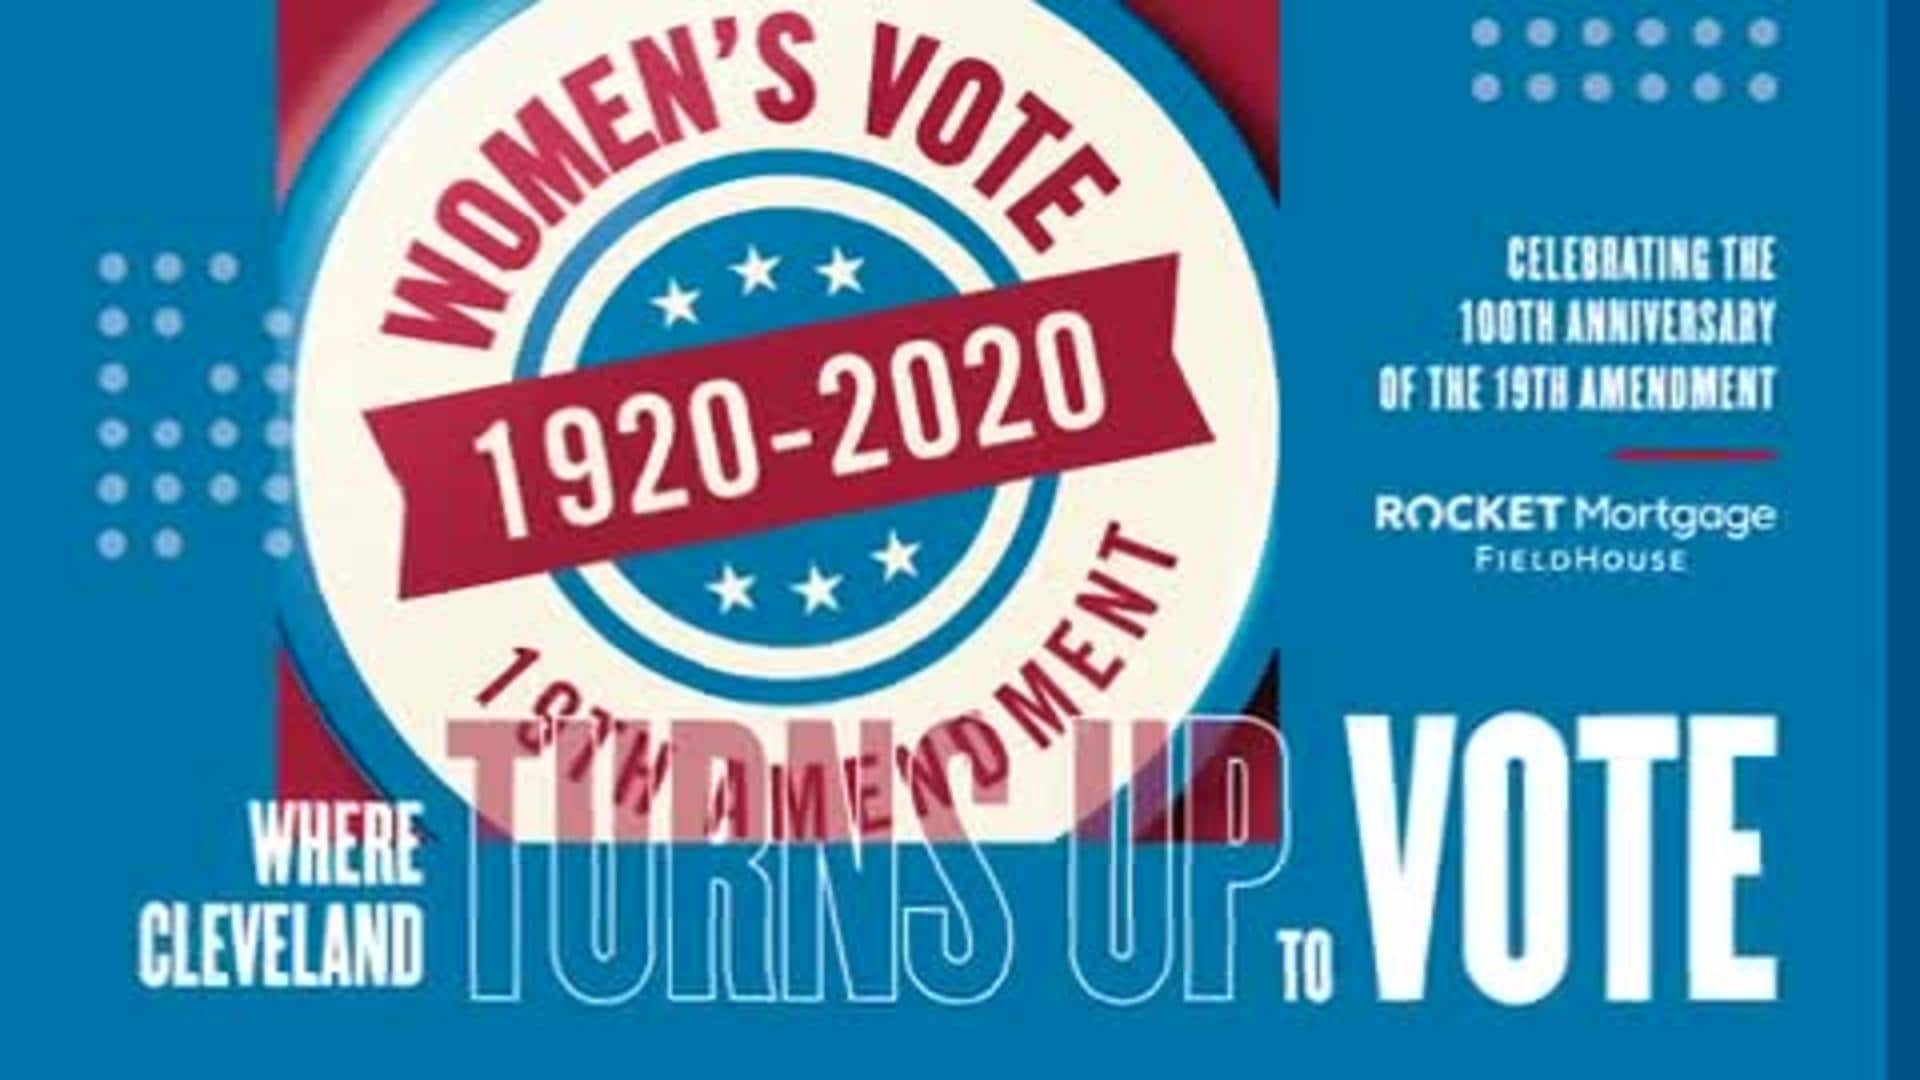 Celebrating the 100th Anniversary of the 19th Amendment